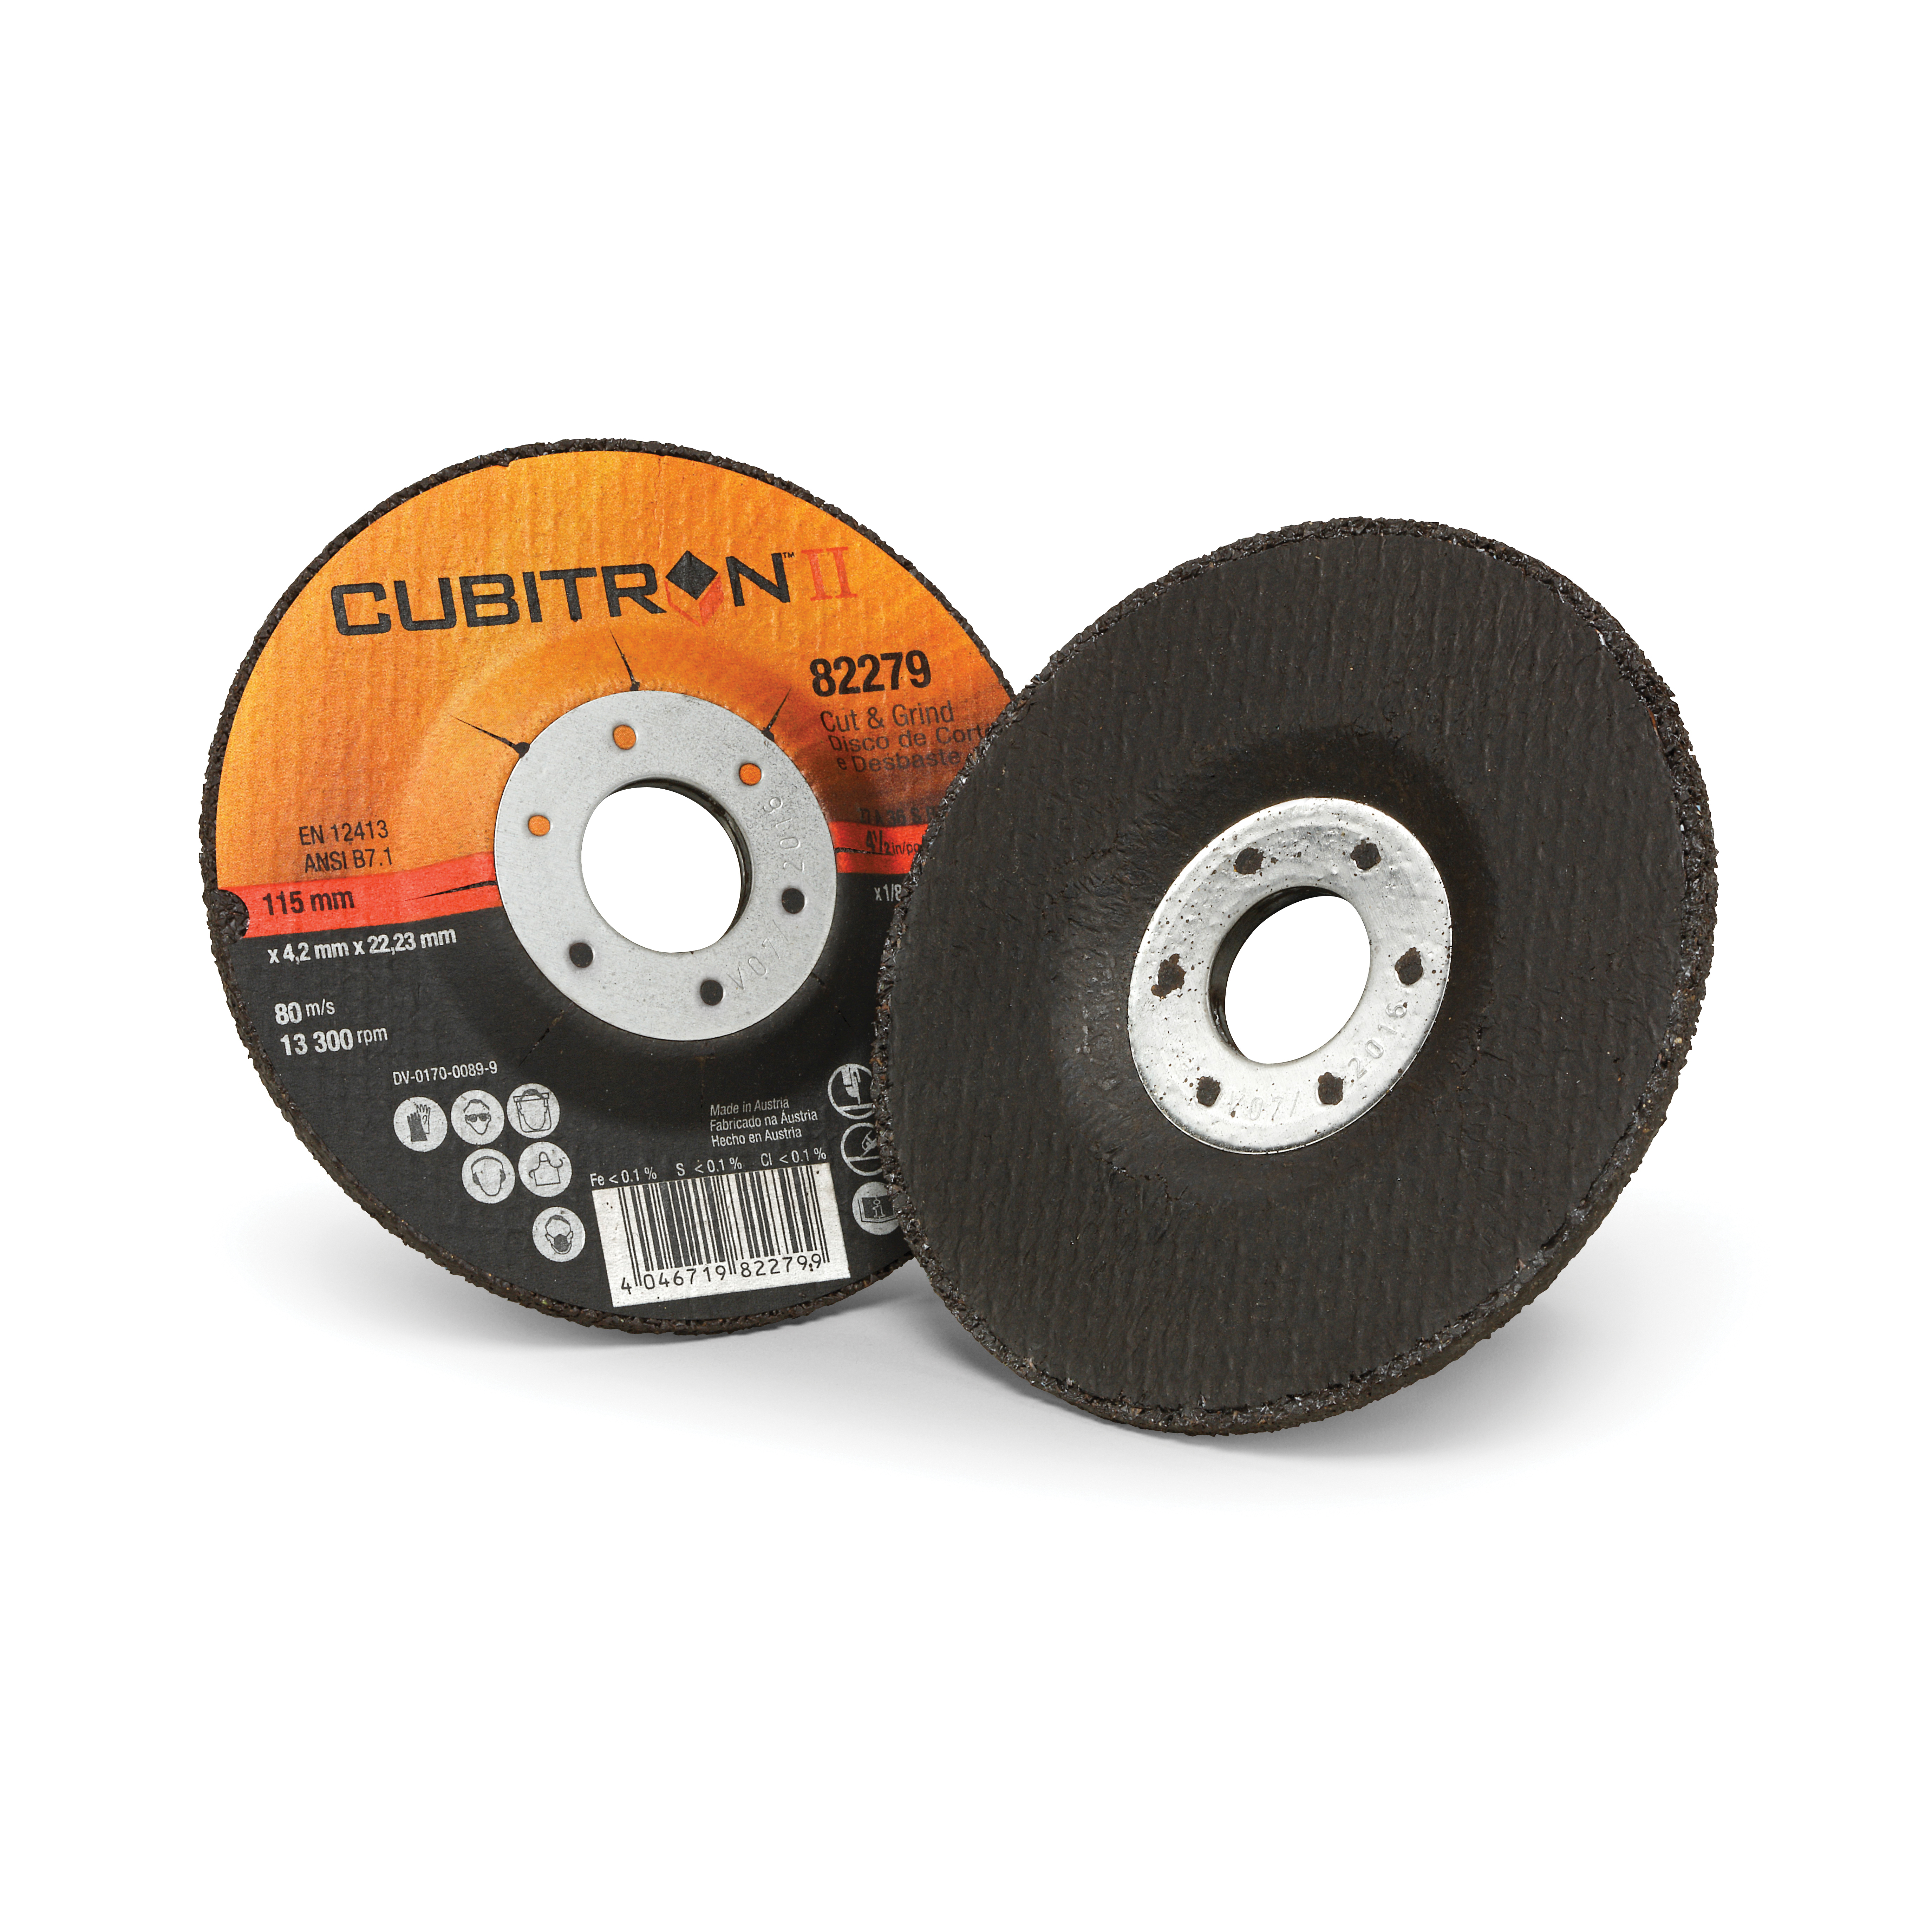 Cubitron™ II 046719-82278 Type 27 Cut-Off Wheel, 5 in Dia x 1/8 in THK, 7/8 in Center Hole, 36 Grit, Precision Shaped Ceramic Abrasive